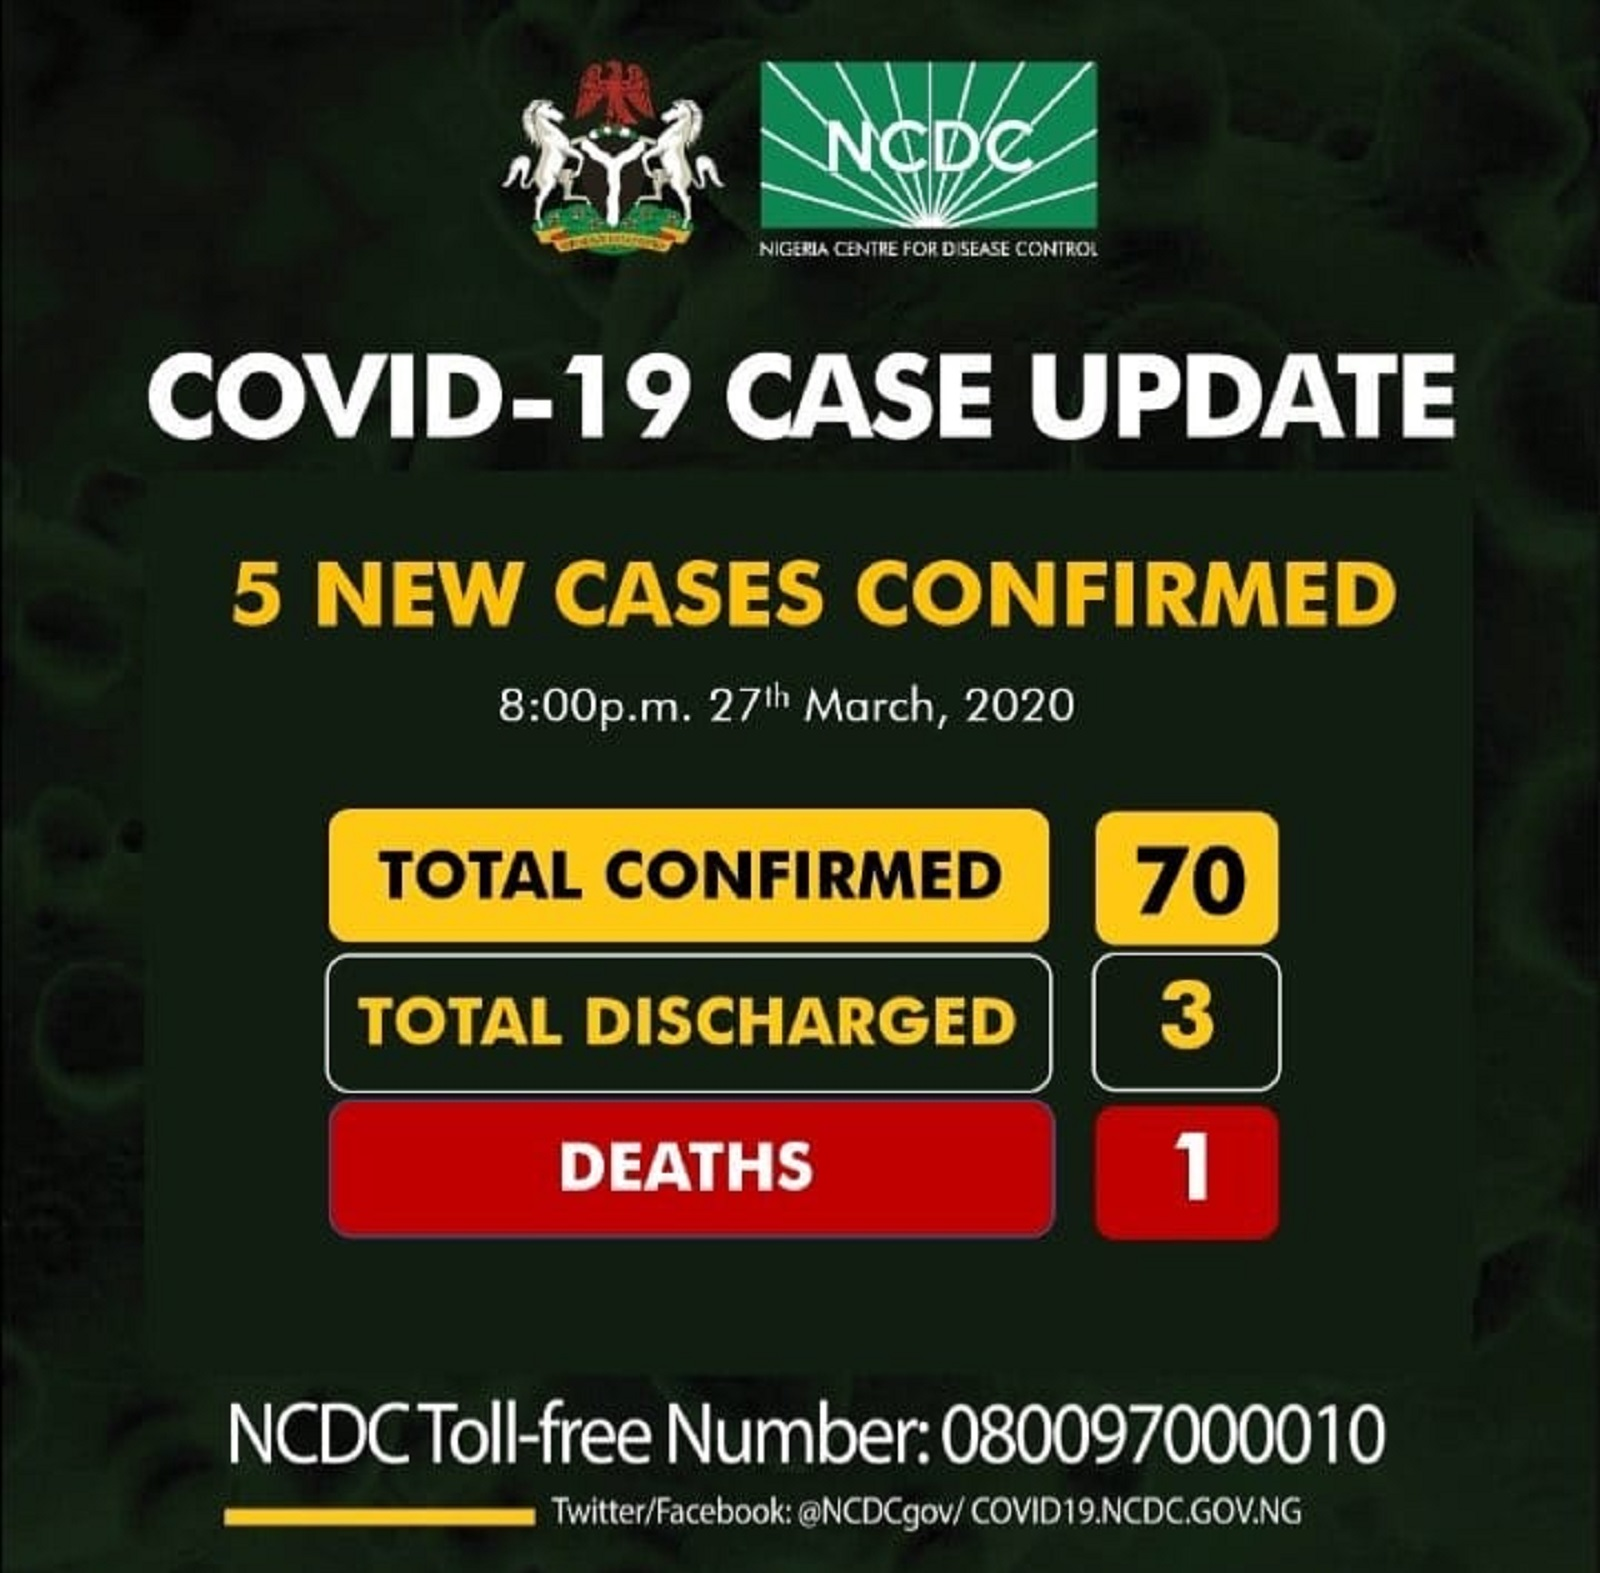 Photo of BREAKING: Nigeria confirms another new 5 Covid-19 cases; making 70